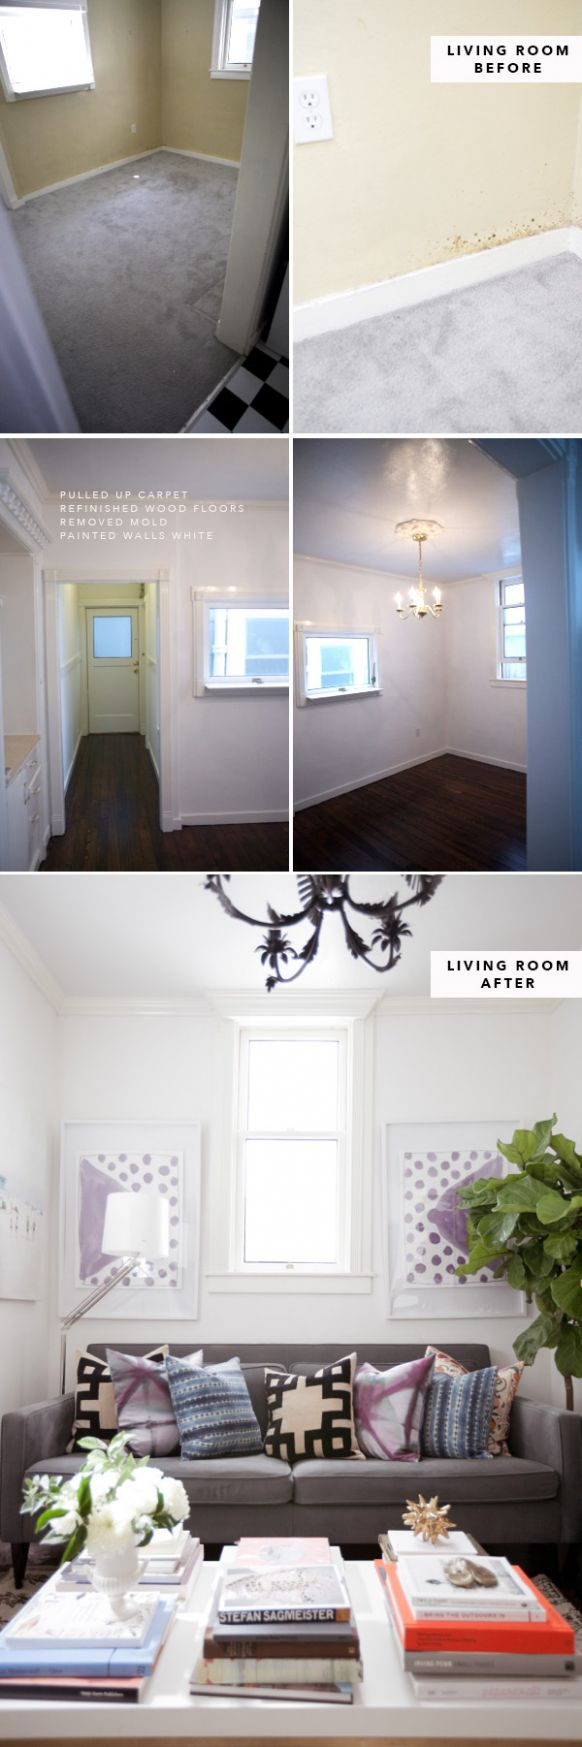 Apartment Pictures: Before and After! - apartment design before and after